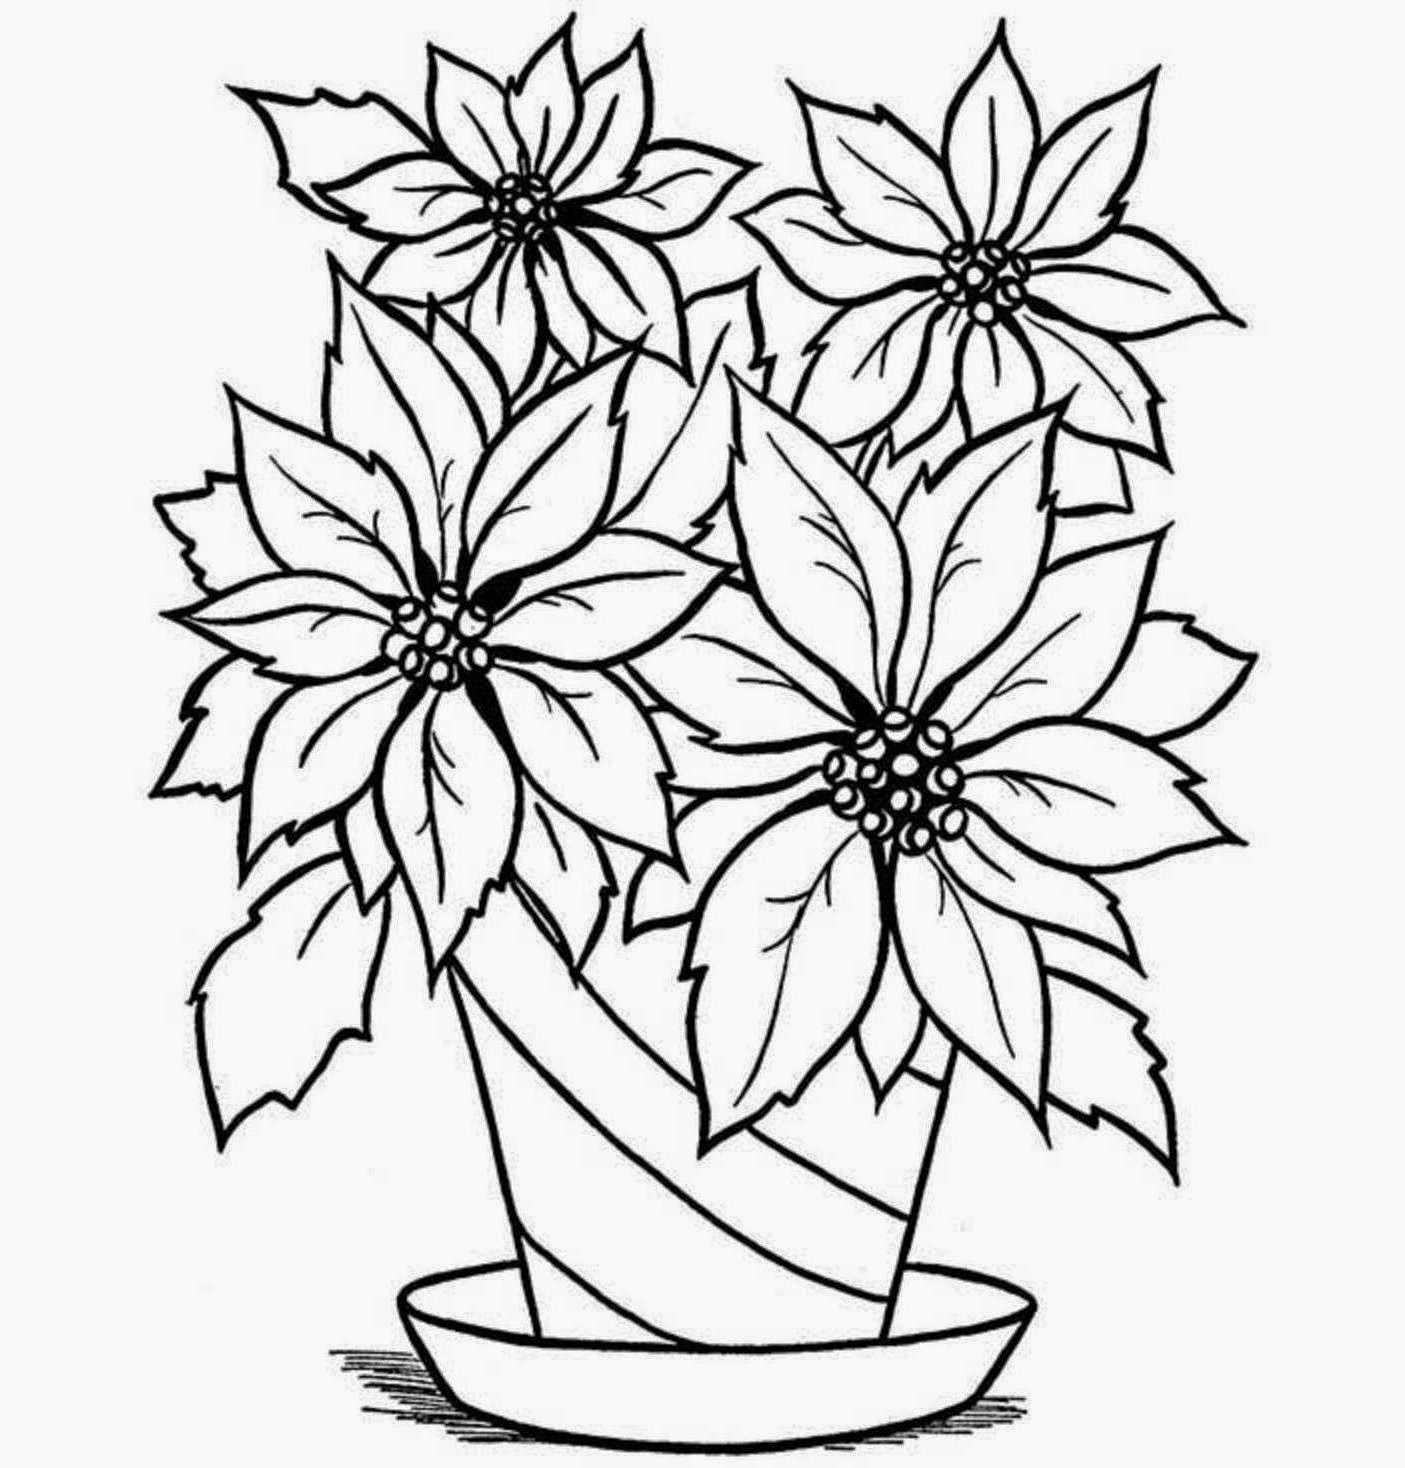 1405x1468 Vase Drawing For Kids Images